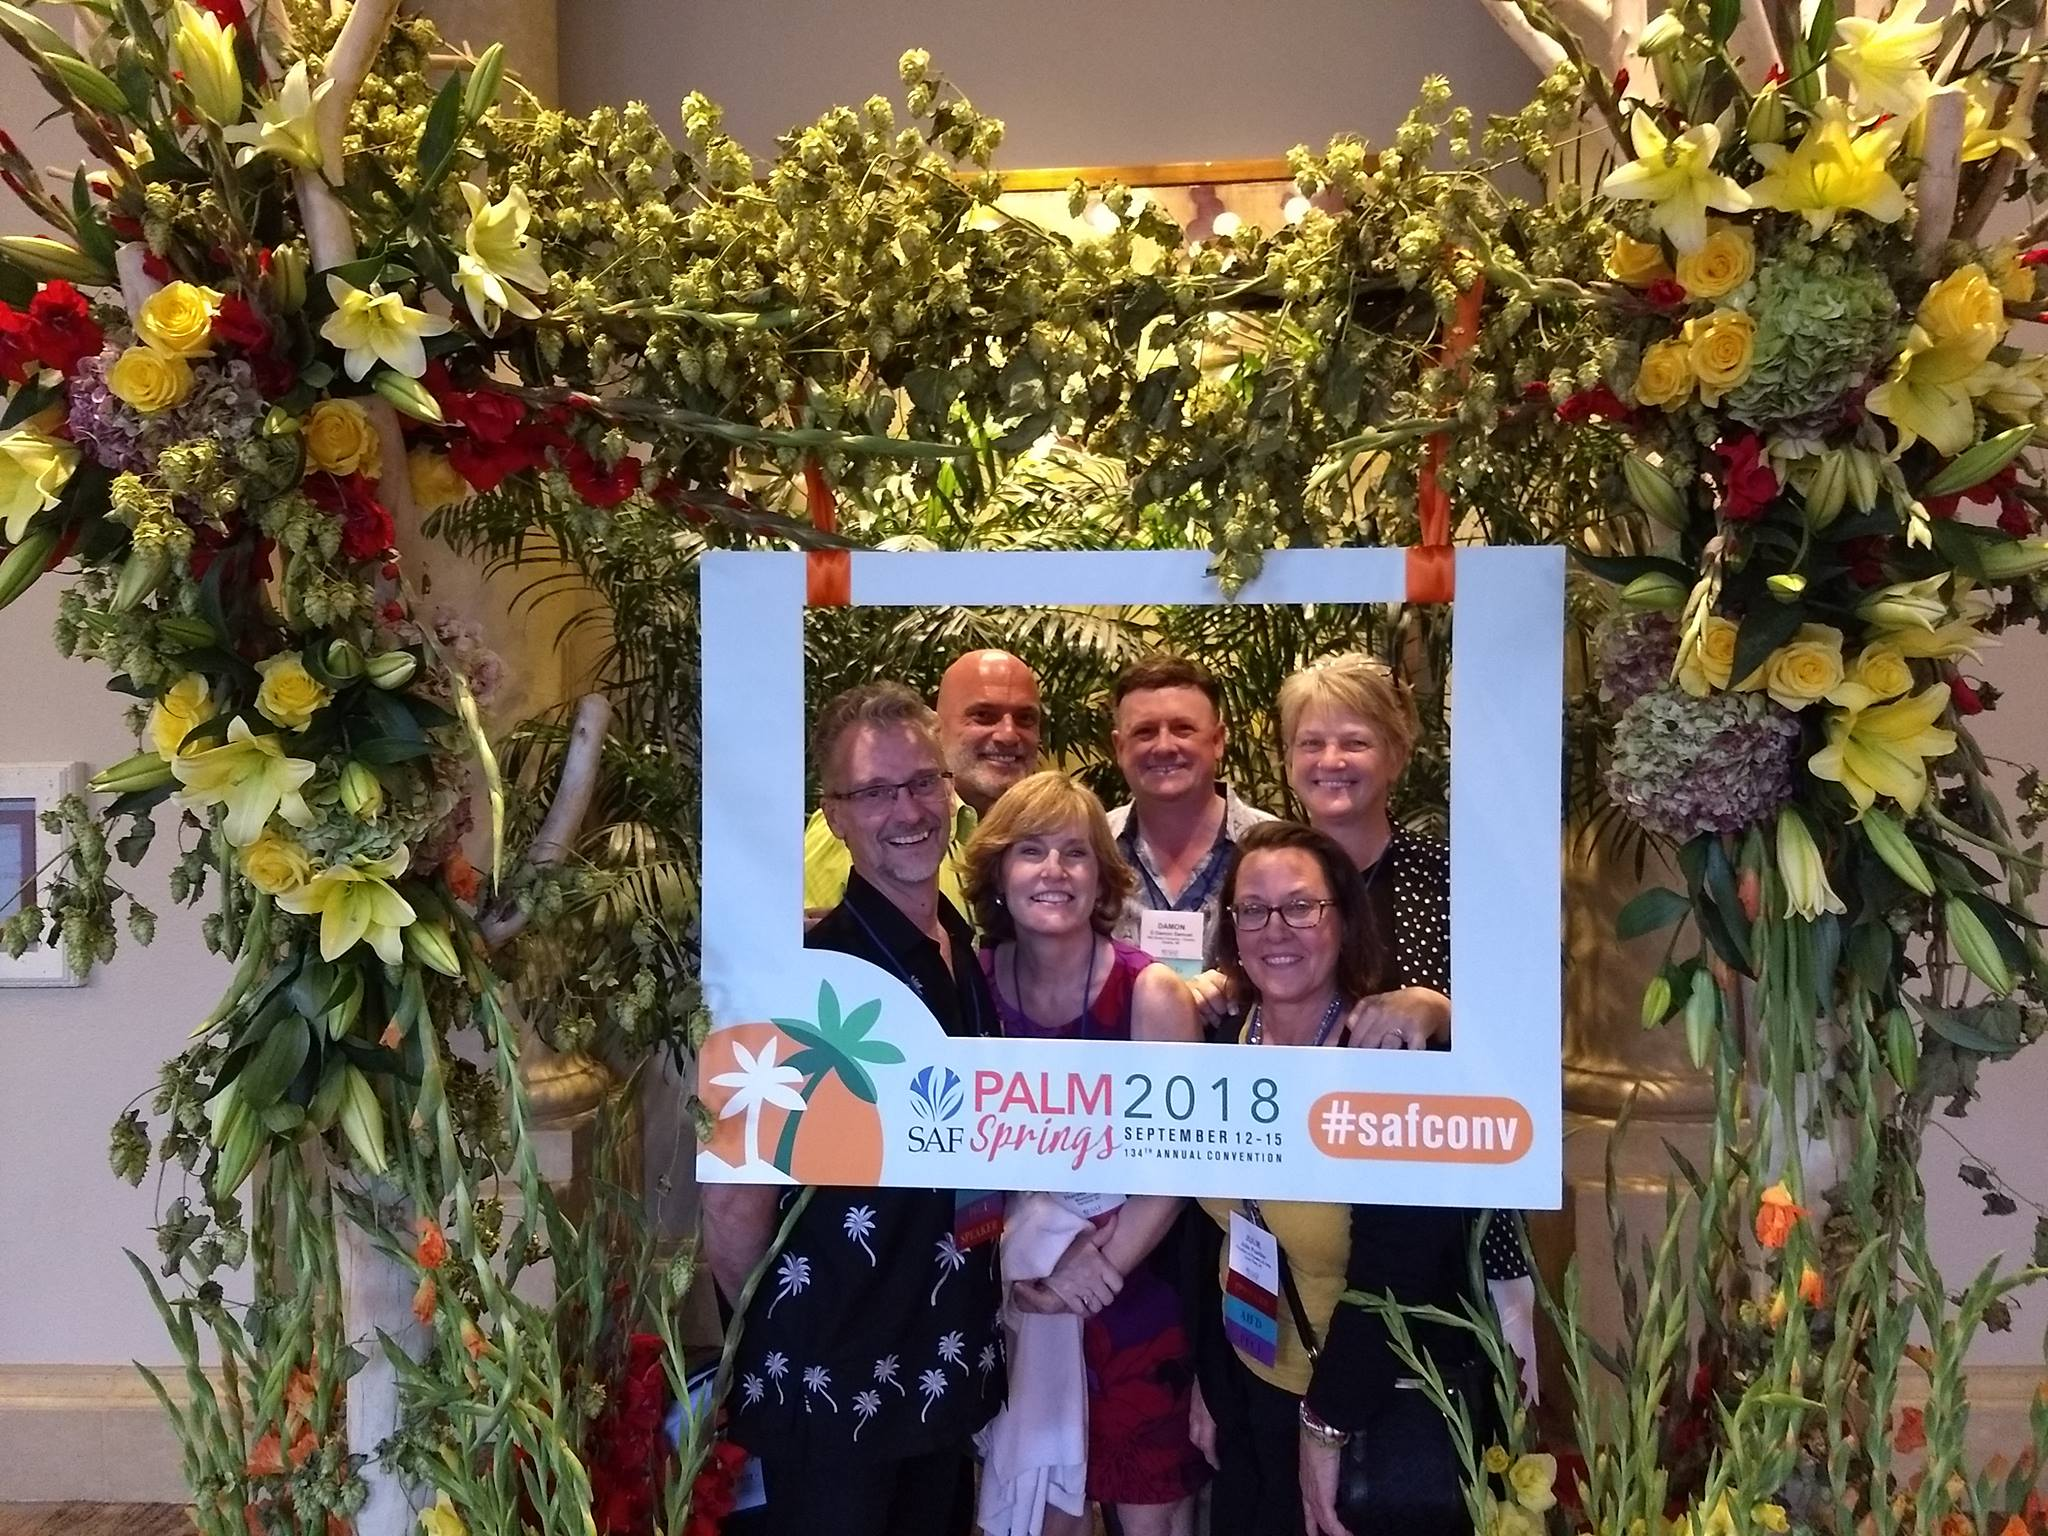 Jenny Behlings, AAF, AIFD, PFCI, SDCF, (upper right) was one of more than 450 floral industry members who participated in SAF Palm Springs 2018 in September, and then returned home with actionable ideas. Pictured with Behlings from left: J. Robbin Yelverton, AAF, AIFD, PFCI, of Blumz by...JRDesigns in metro Detroit, Michigan; Marlin Hargrove, AAF, AIFD, PFCI, of the Pete Garcia Company in Atlanta, Georgia; Theresa Colucci, AAF, AIFD, PFCI, of Meadowscent in Gardiner, New York; D Damon Samuel, AAF, AIFD, PFCI, NAFD, NMF, of the Bill Doran Co. in Omaha, Nebraska; and Julie Poeltler, AIFD, CAFA, PFCI, of Fountain of Flowers & Gifts in Lone Tree, Iowa.